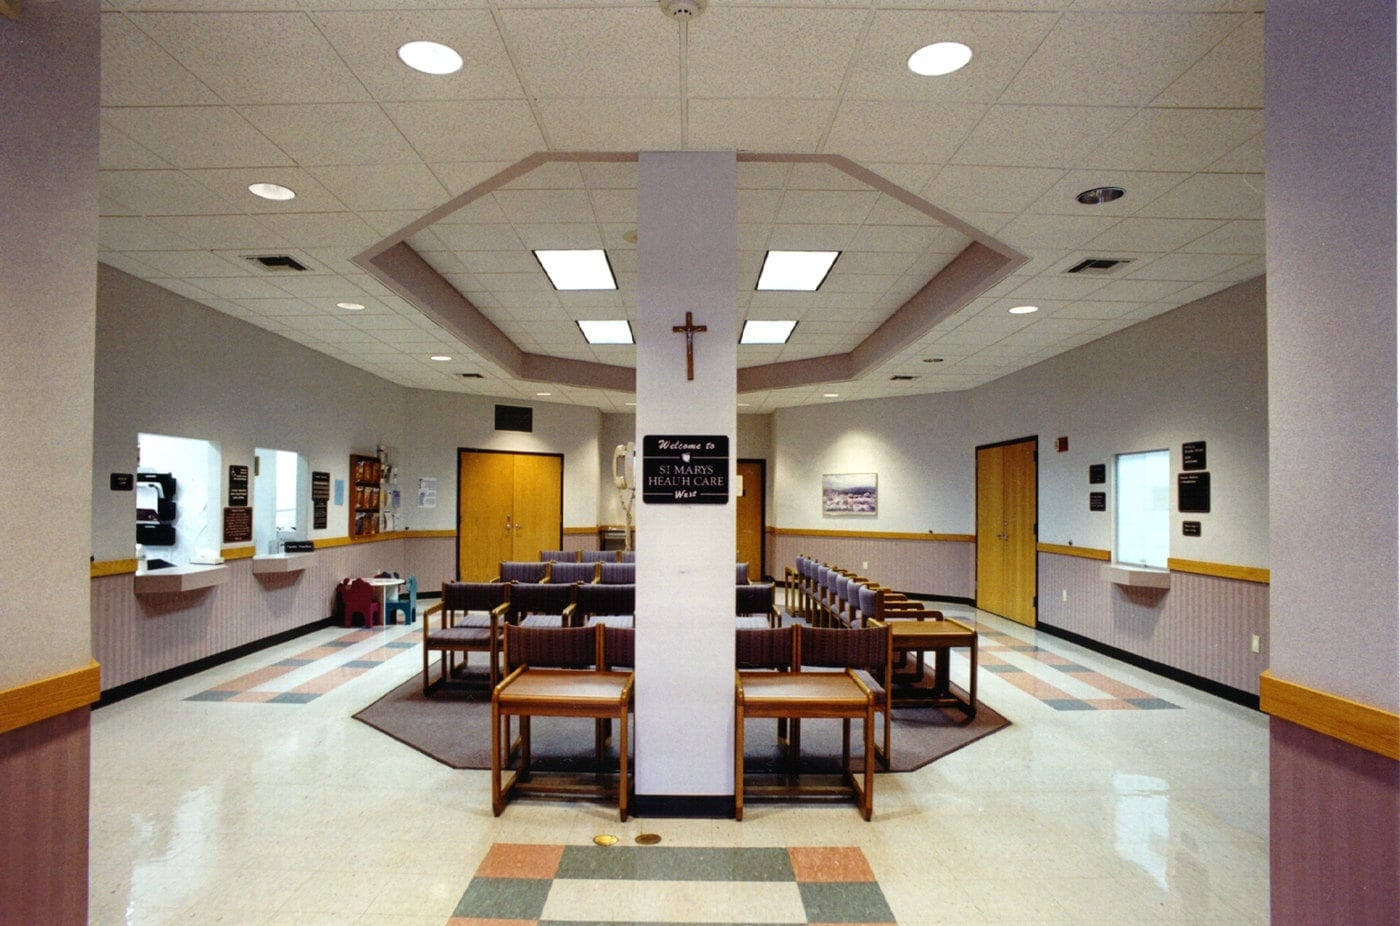 St Mary's Urgent Care West